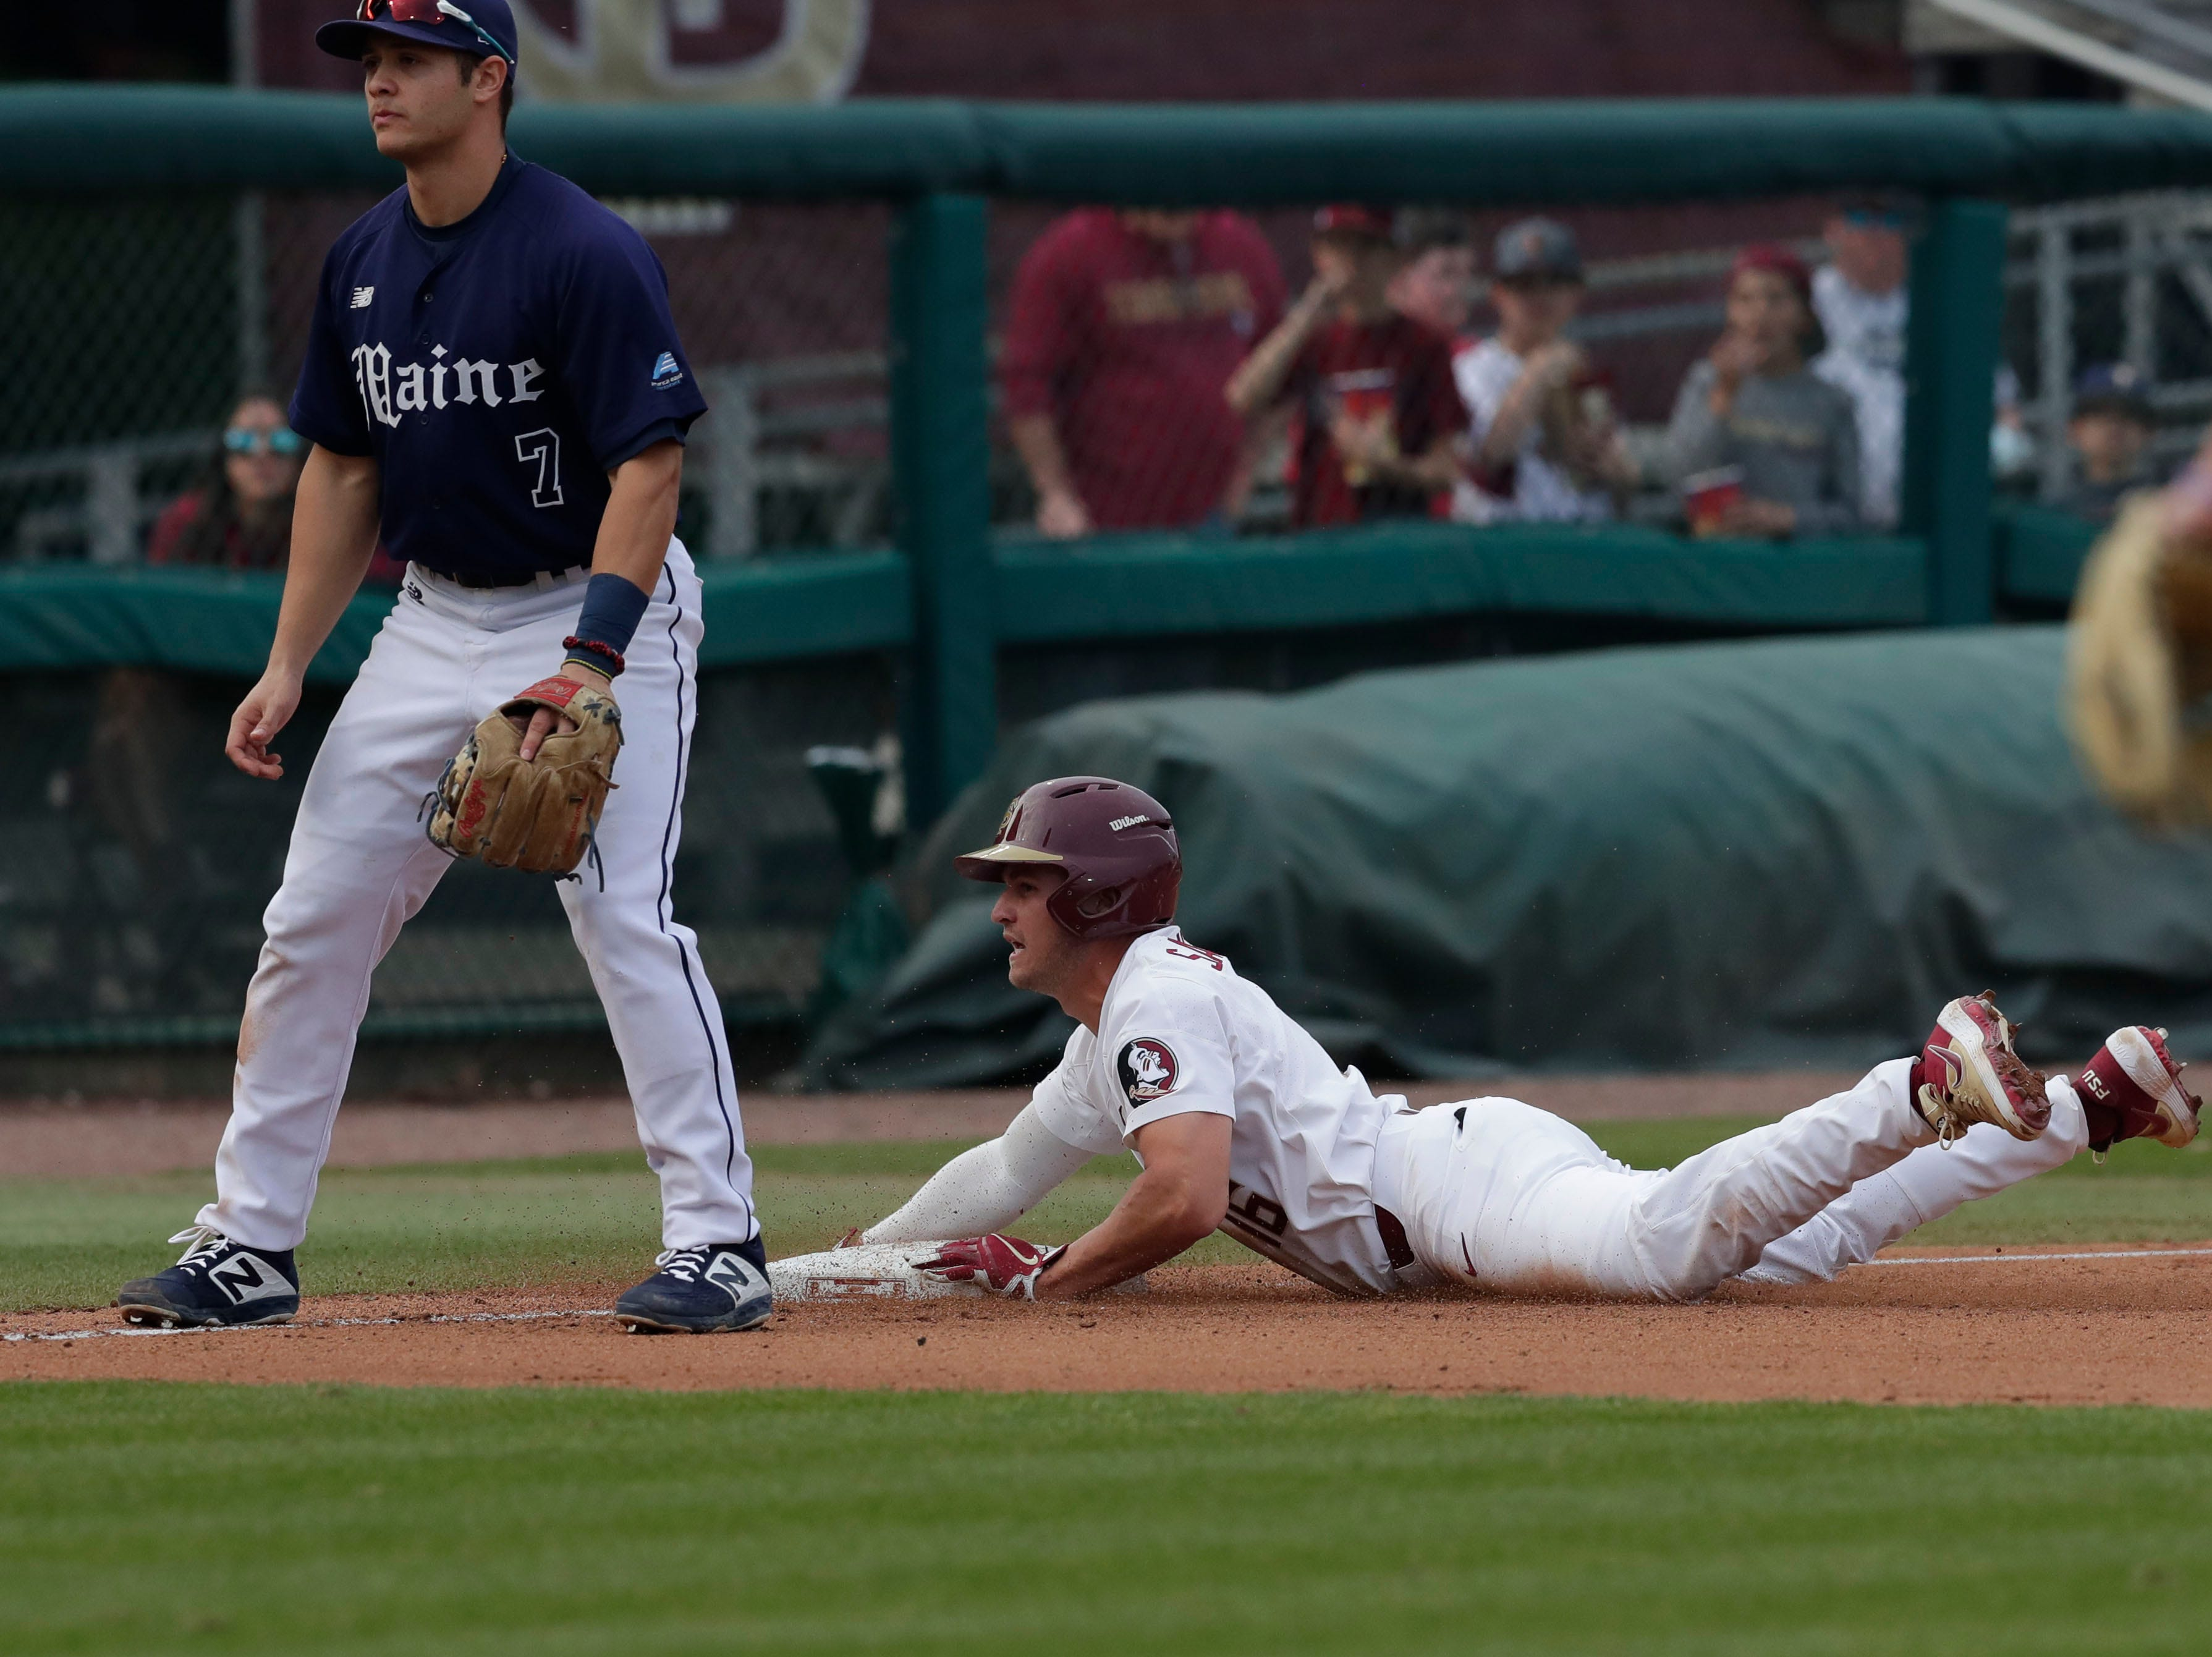 Florida State Seminoles infielder Mike Salvatore (16) slides into third base as the Florida State Seminoles host the Maine Black Bears in the 2019 season opener game, Friday Feb. 15, 2019.